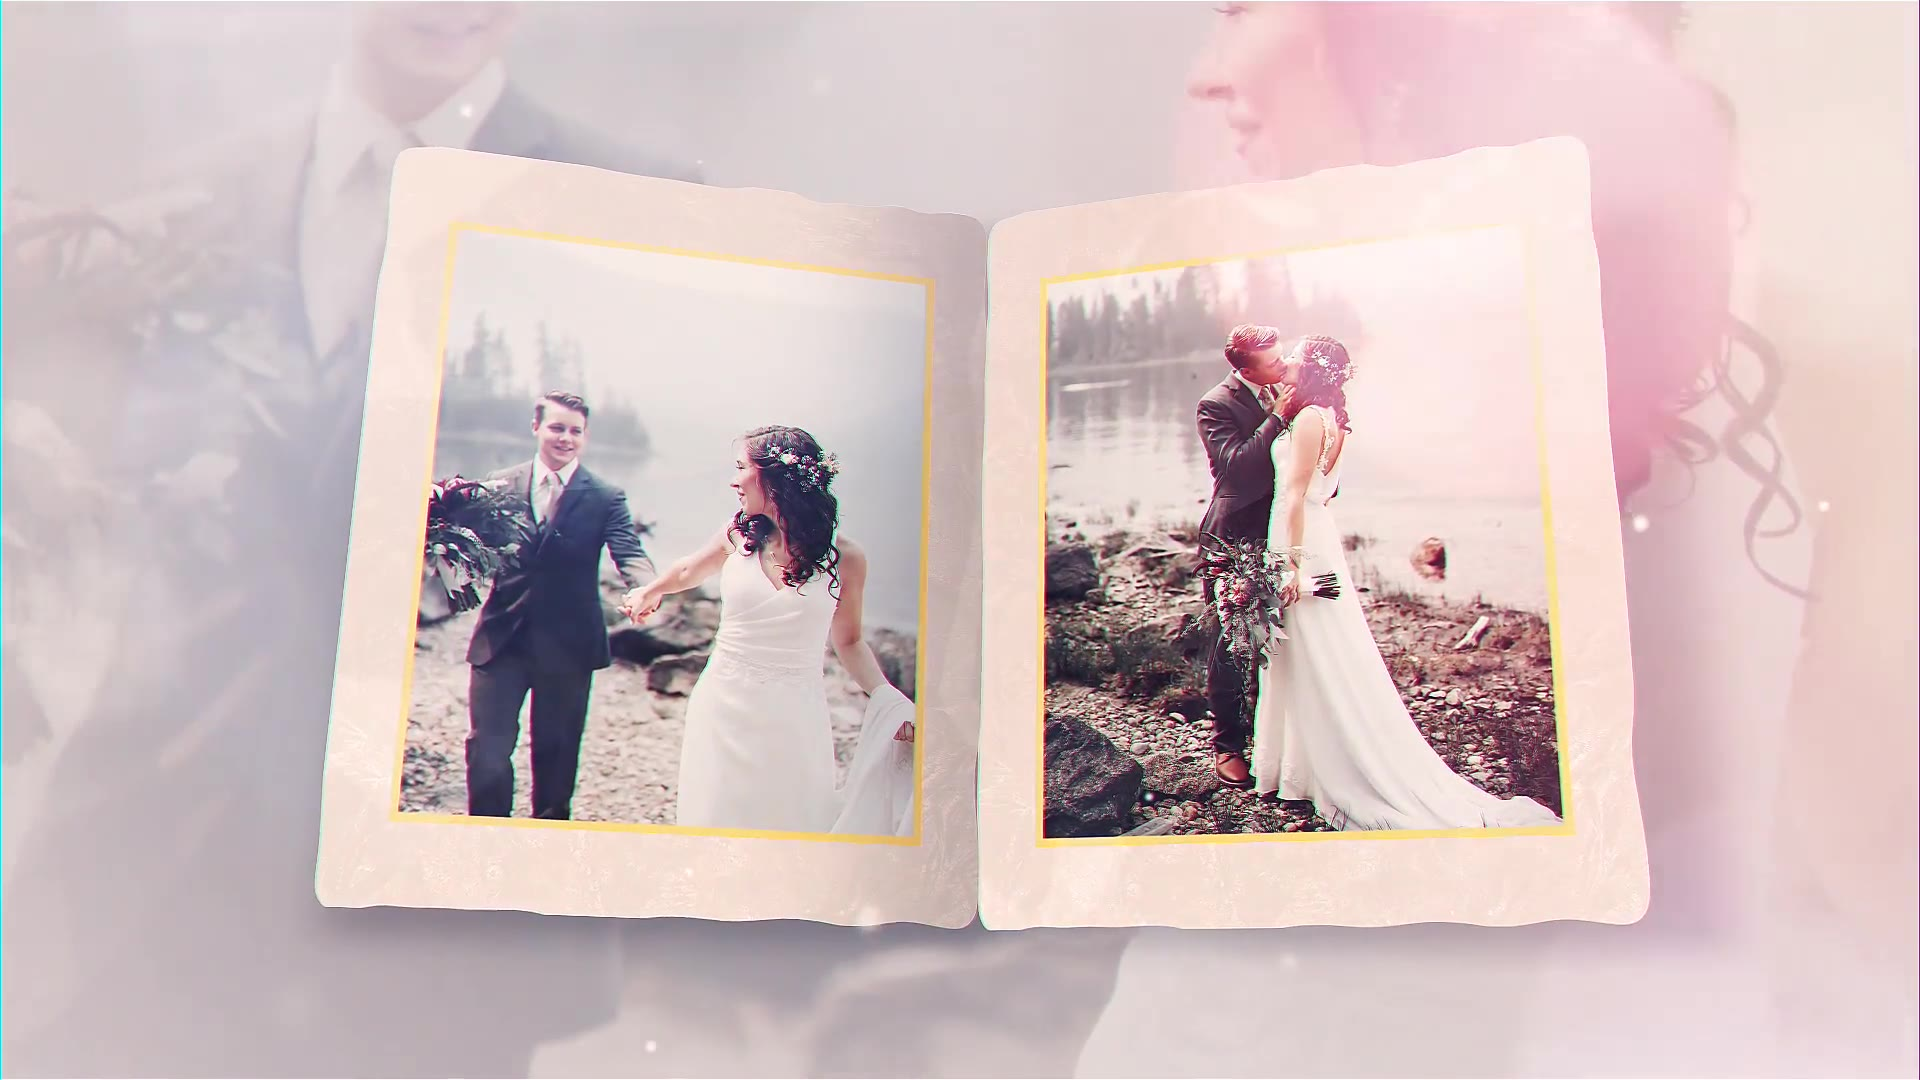 The Wedding - Download Videohive 22659284